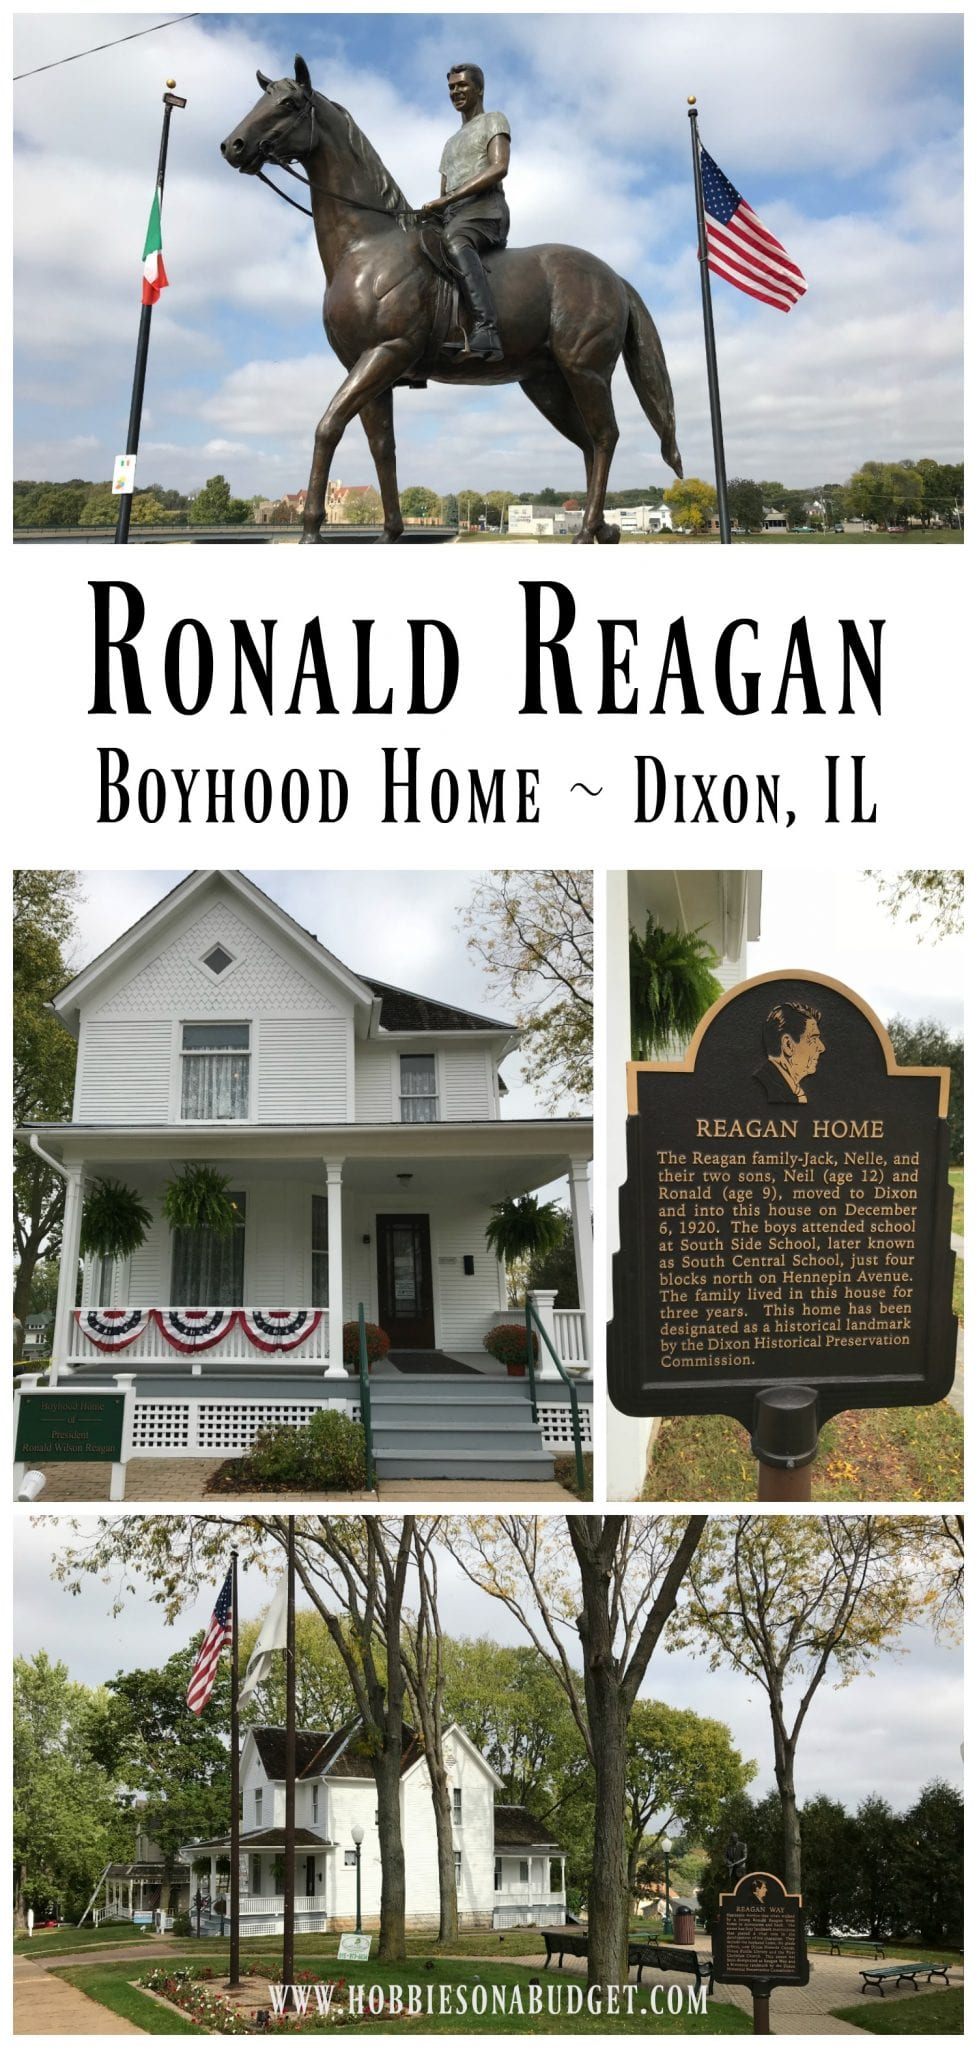 Ronald Reagan Boyhood Home in Dixon Illinois is a great place to learn about President Reagan.